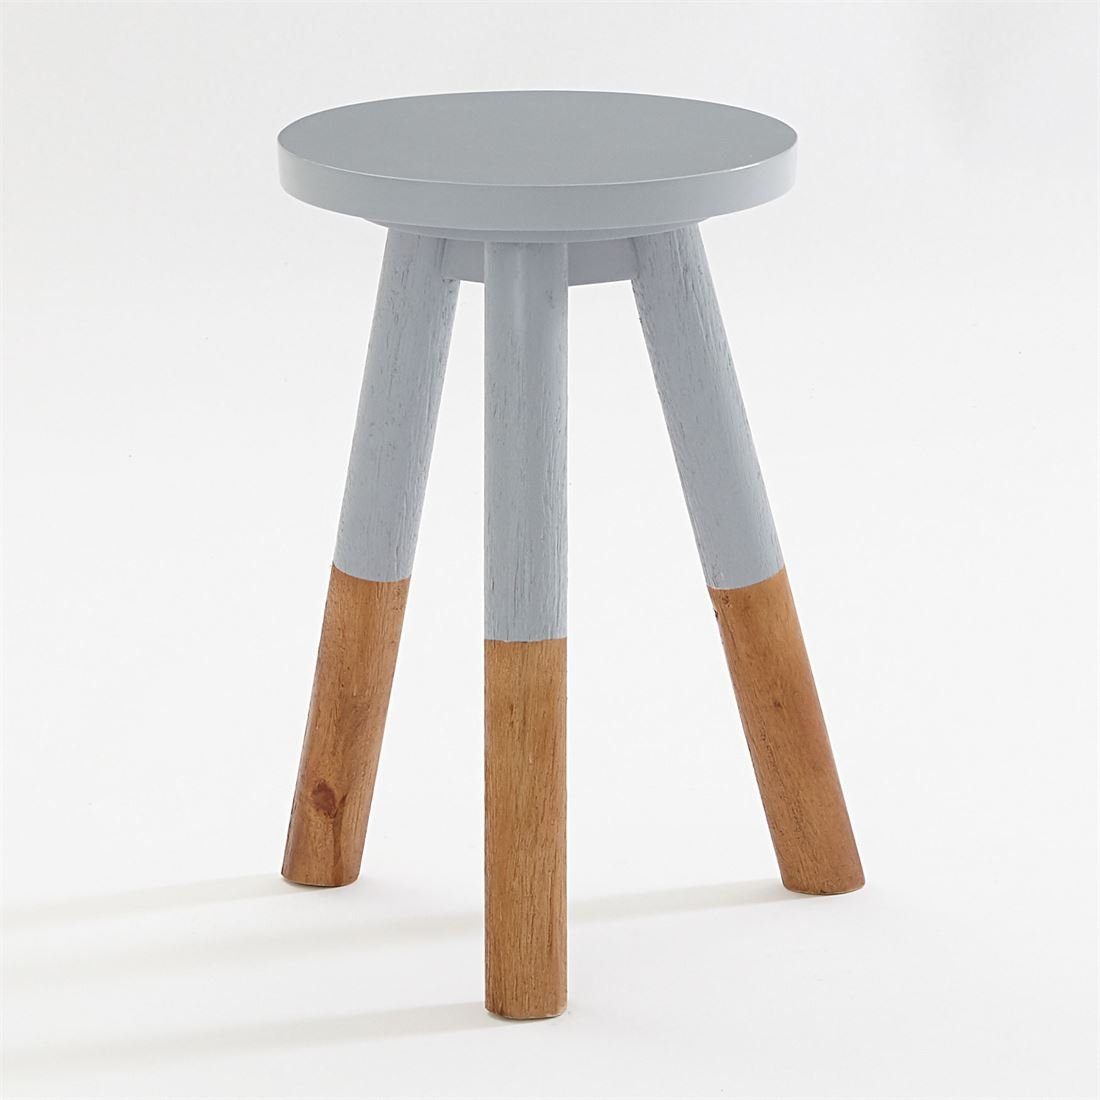 BrylaneHome Arlo Dip-Dyed Table (Gray,0)